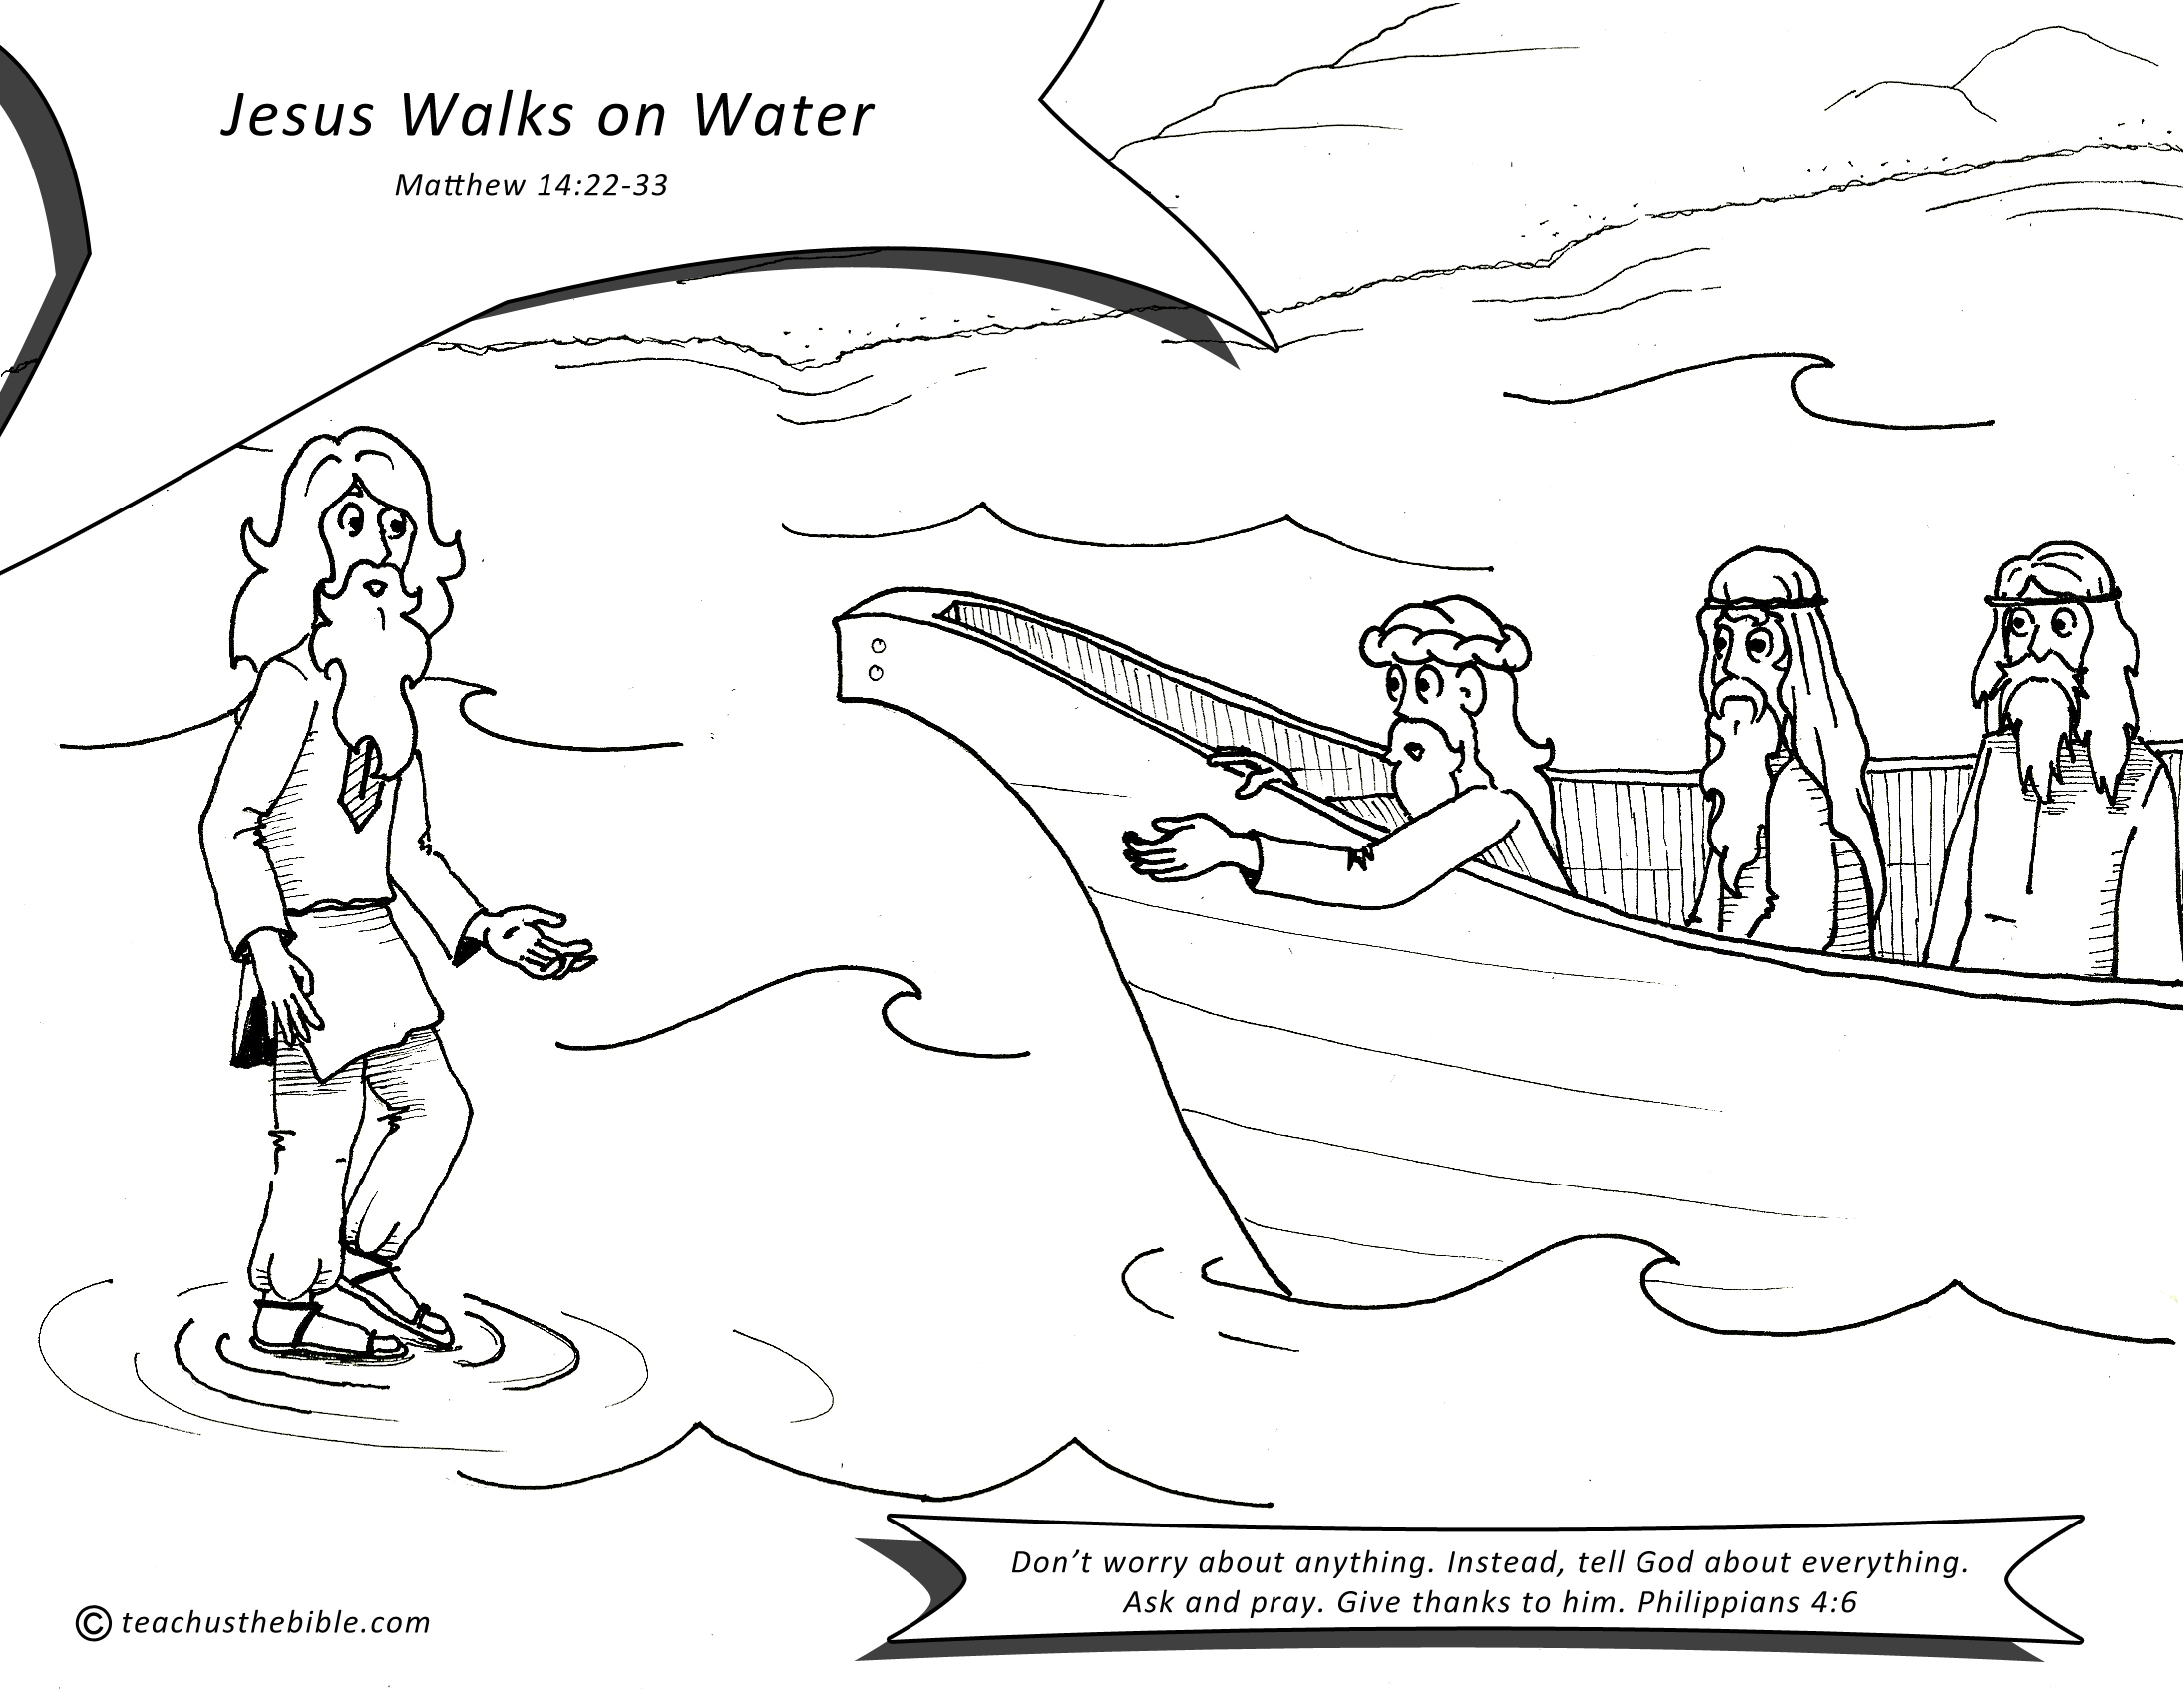 jesus walks on water teach us the bible